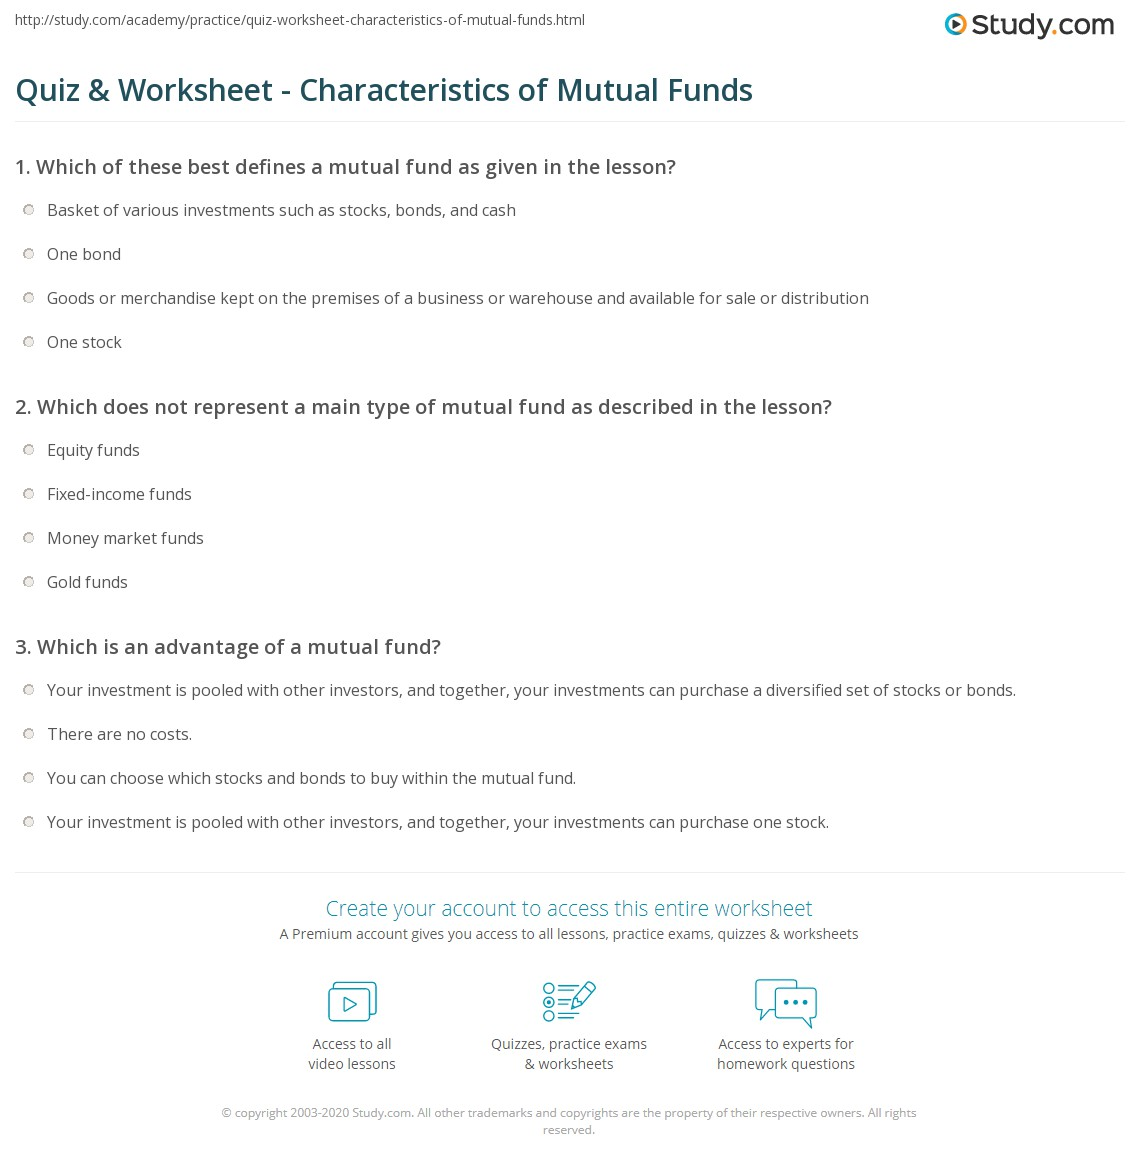 quiz & worksheet - characteristics of mutual funds | study